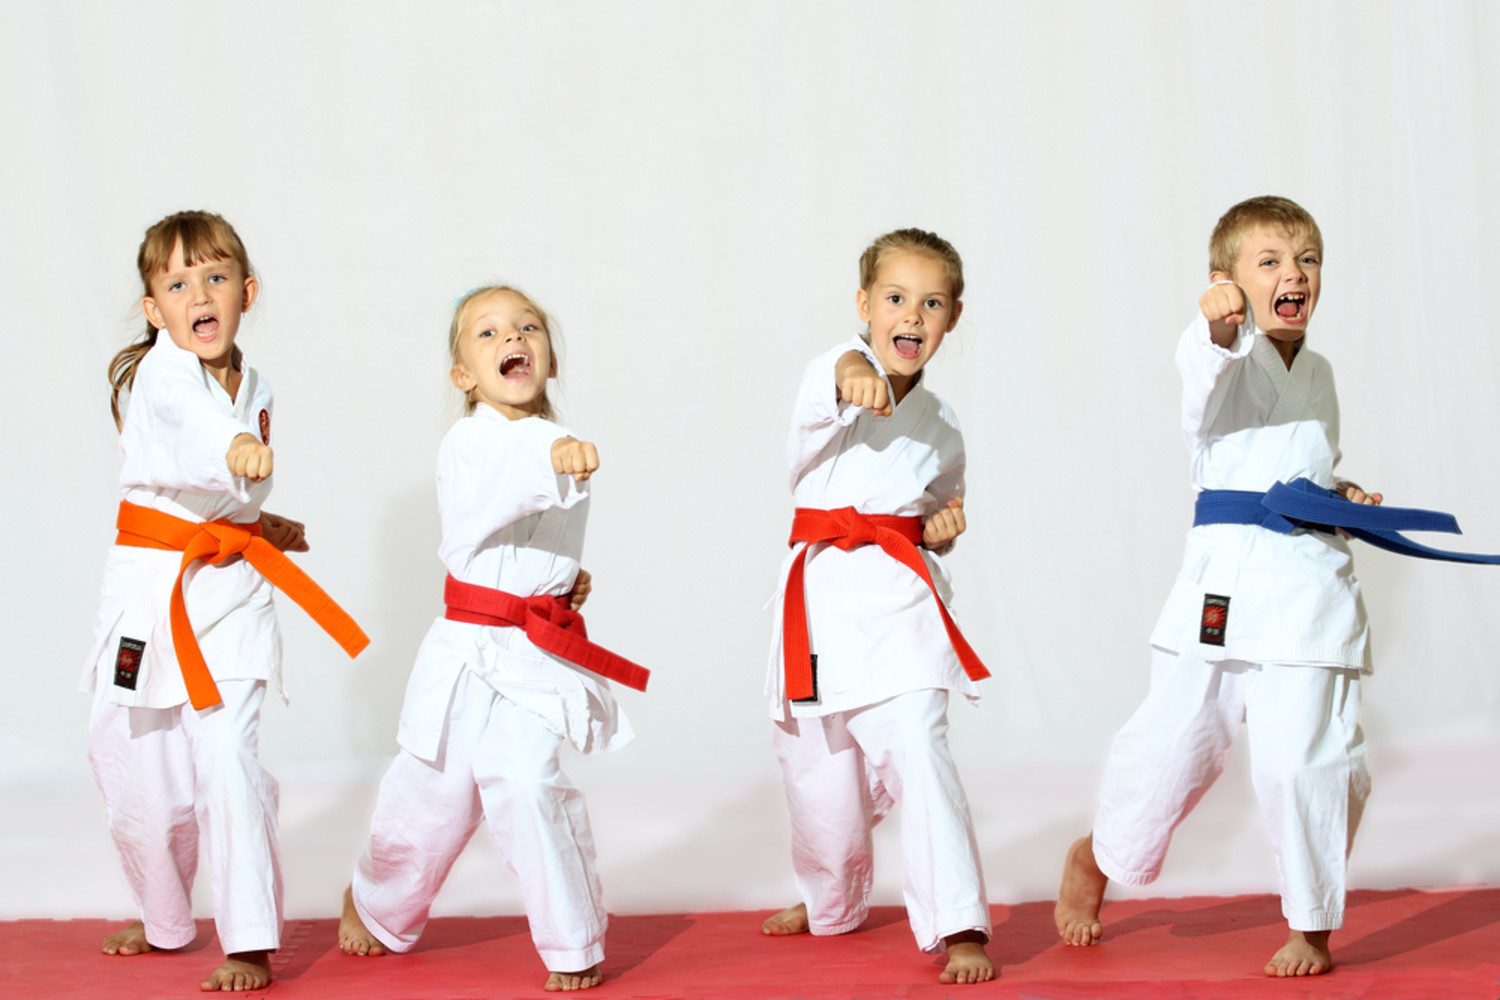 4ab951b7c611c181a30aec29c8f99f0024bad5a8_children-doing-martial-arts.jpg